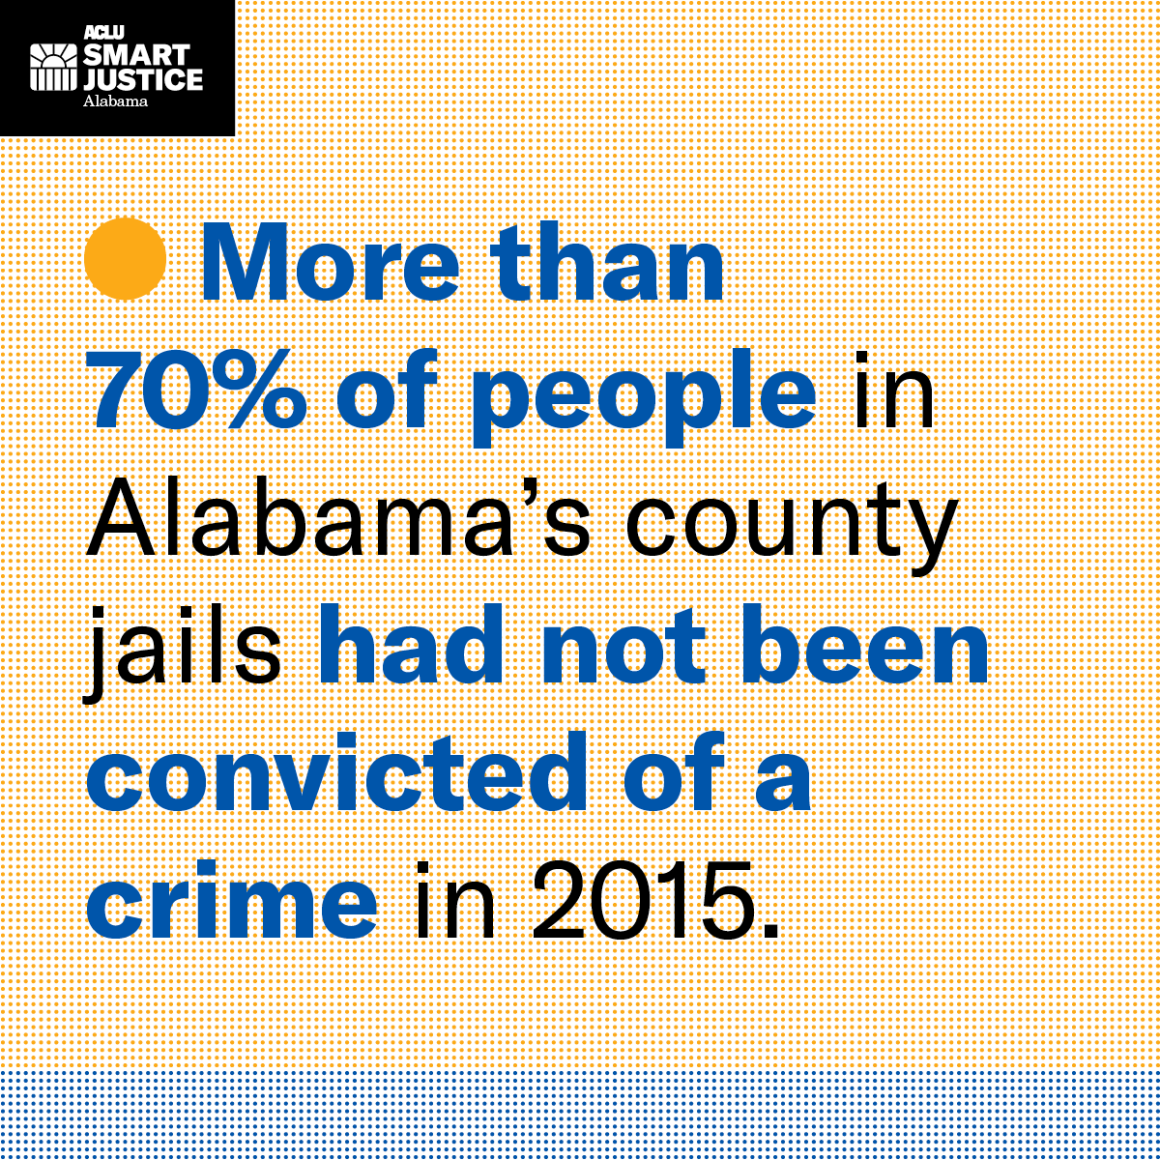 more than 70% of people had not been convicted of a crime